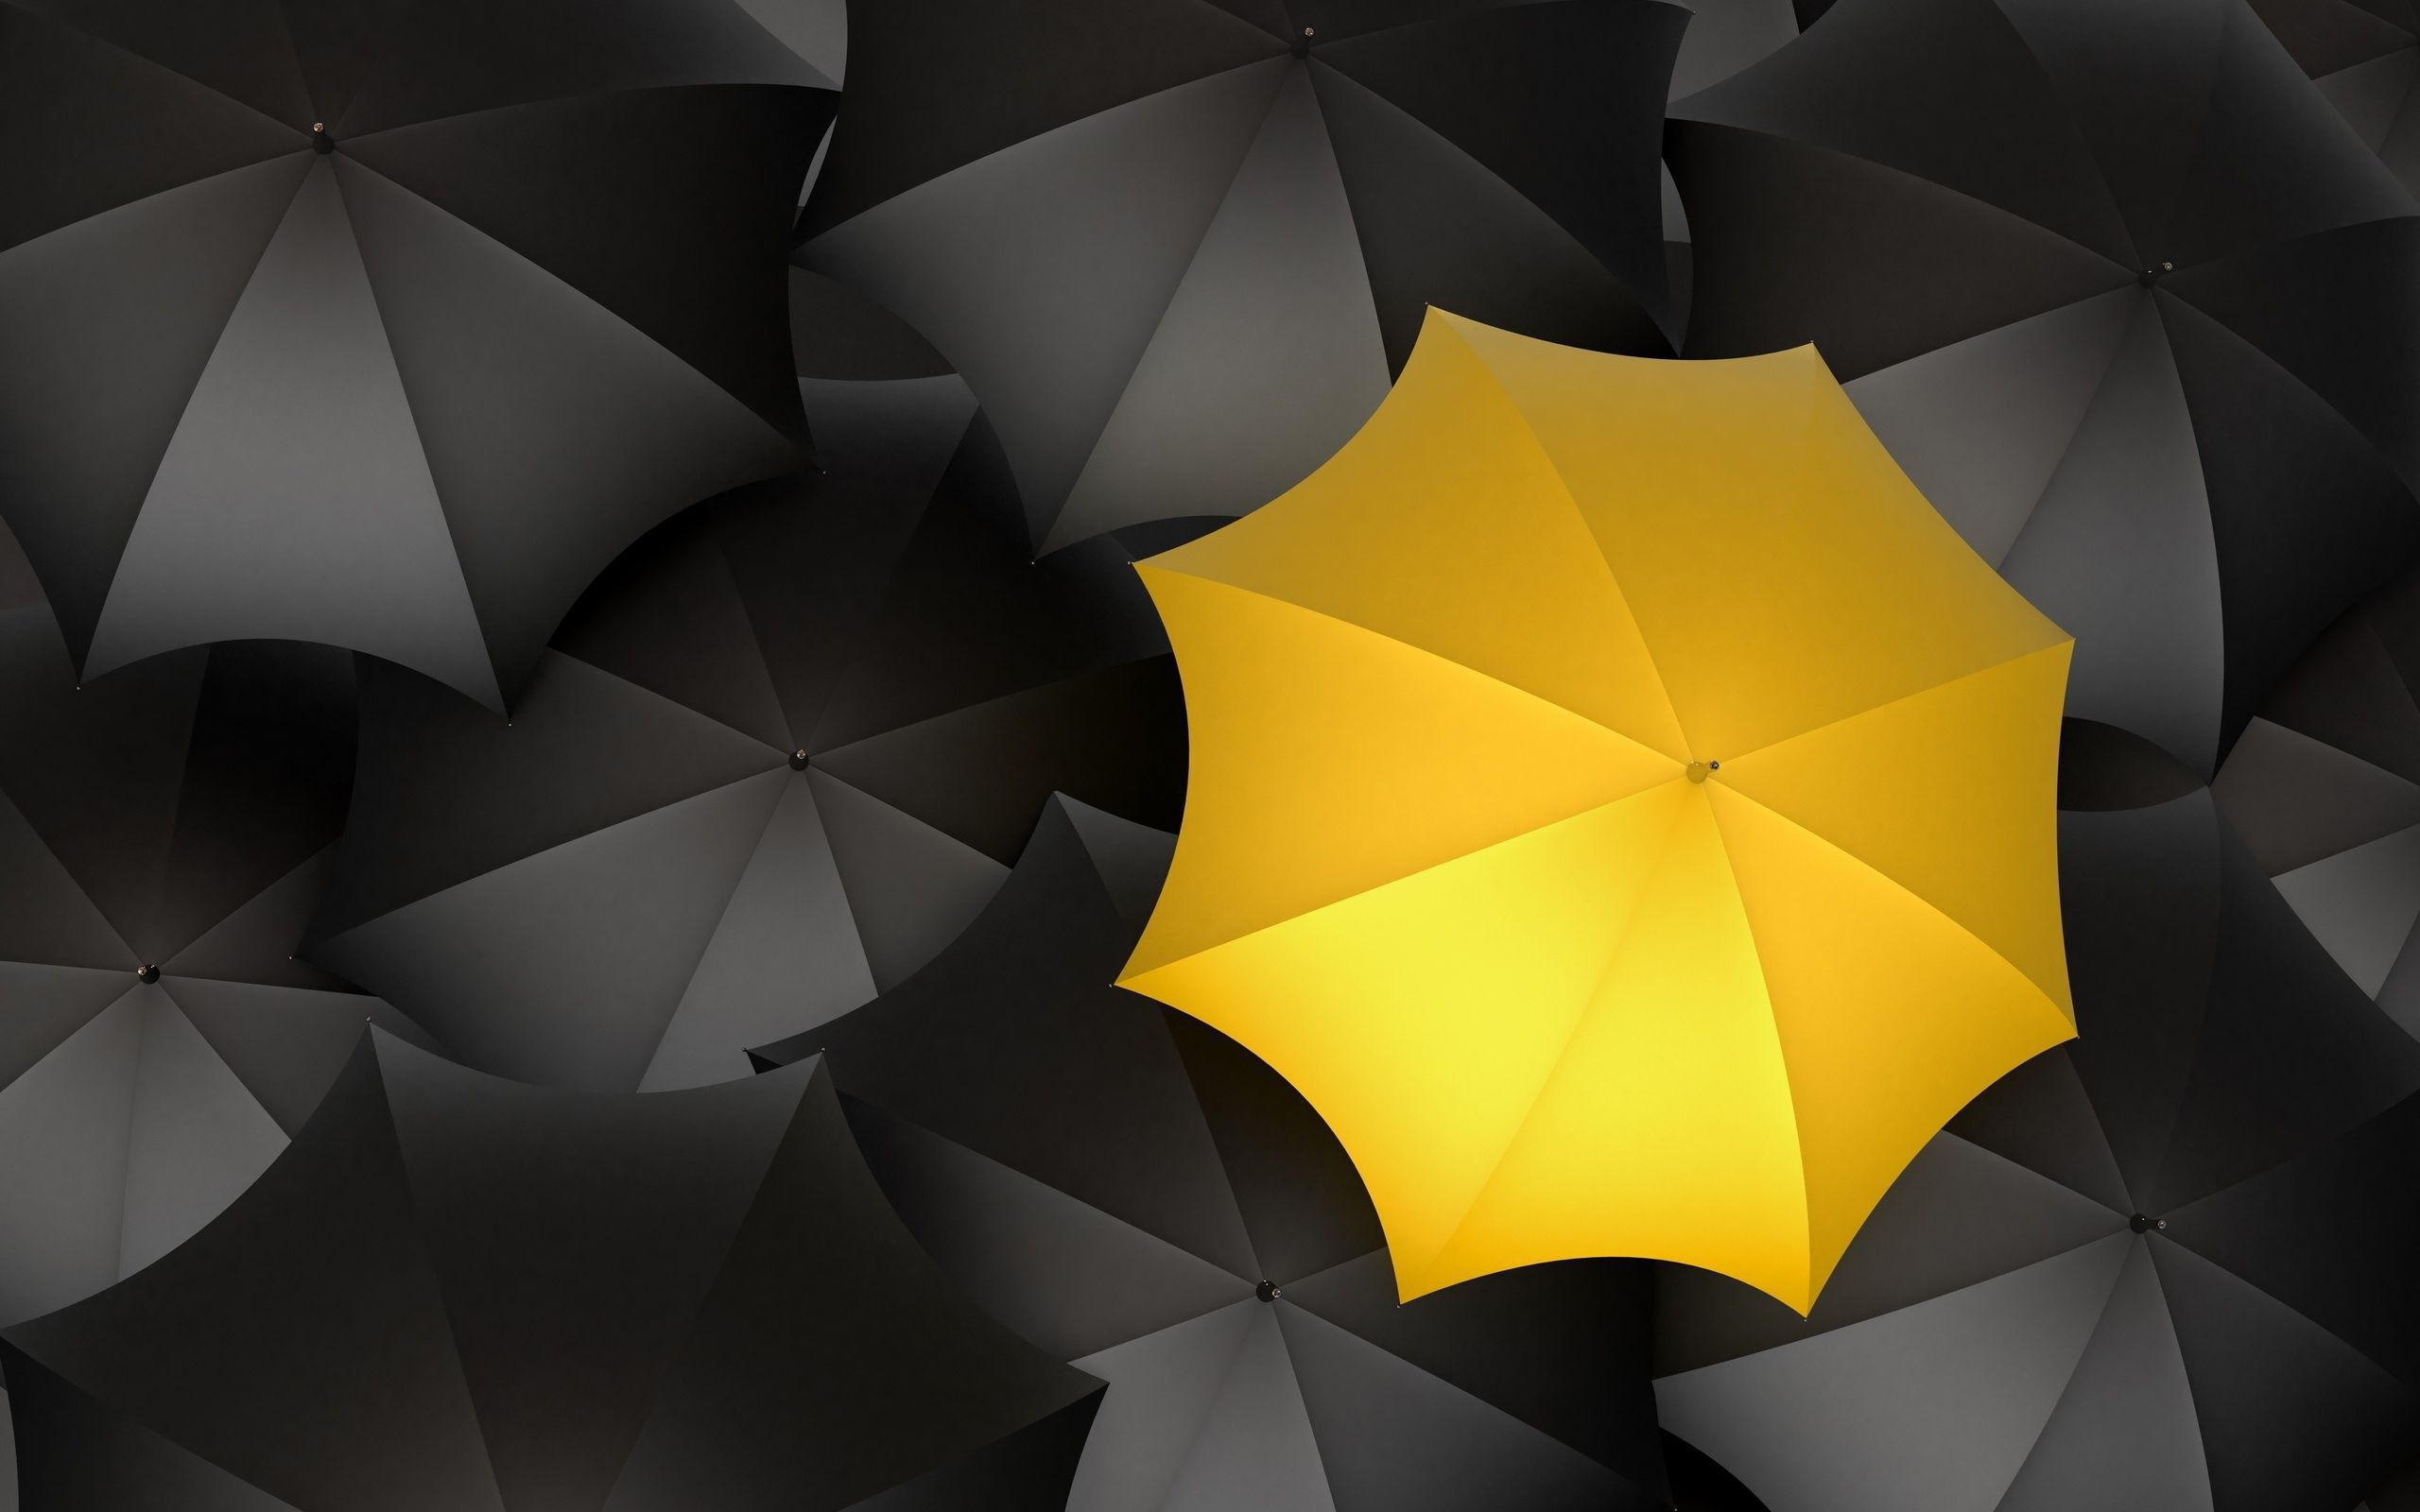 Black And Yellow Wallpaper Pack